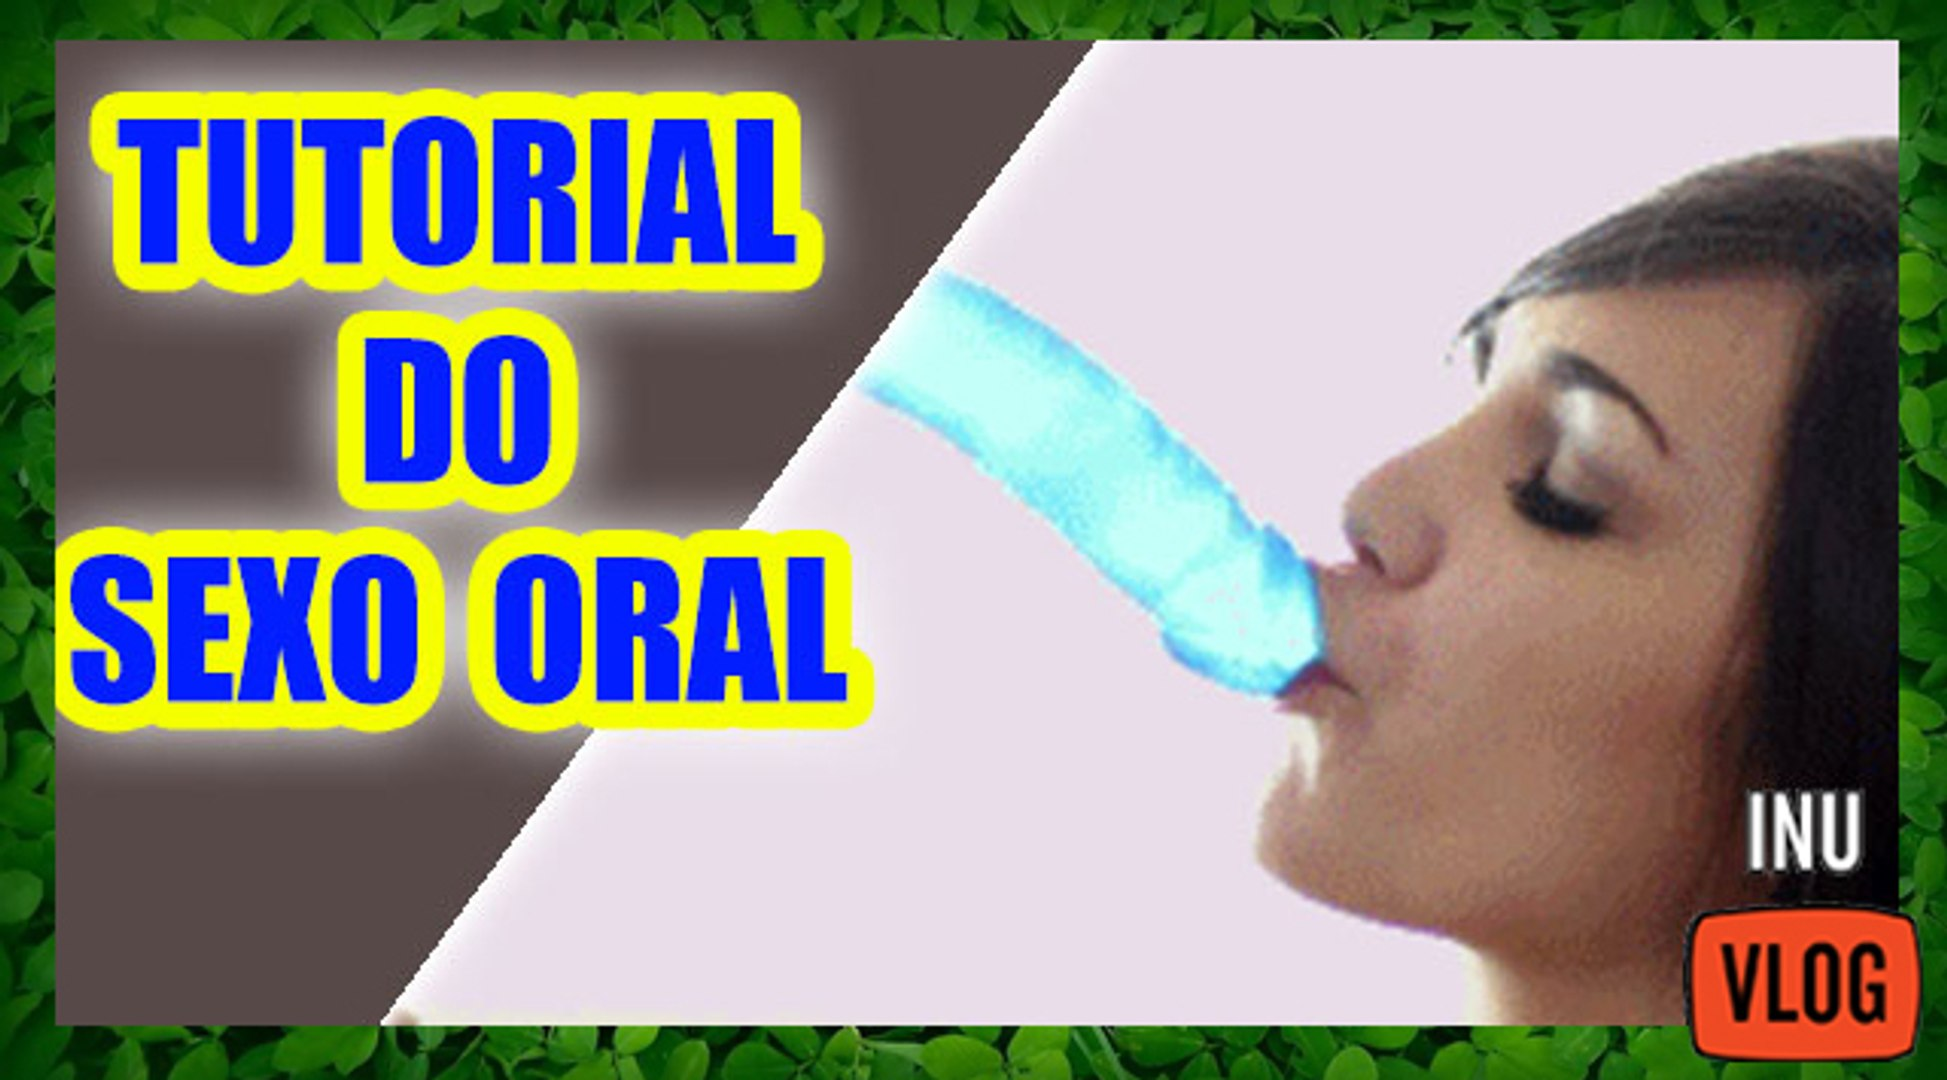 TUTORIAL DO ****O ORAL